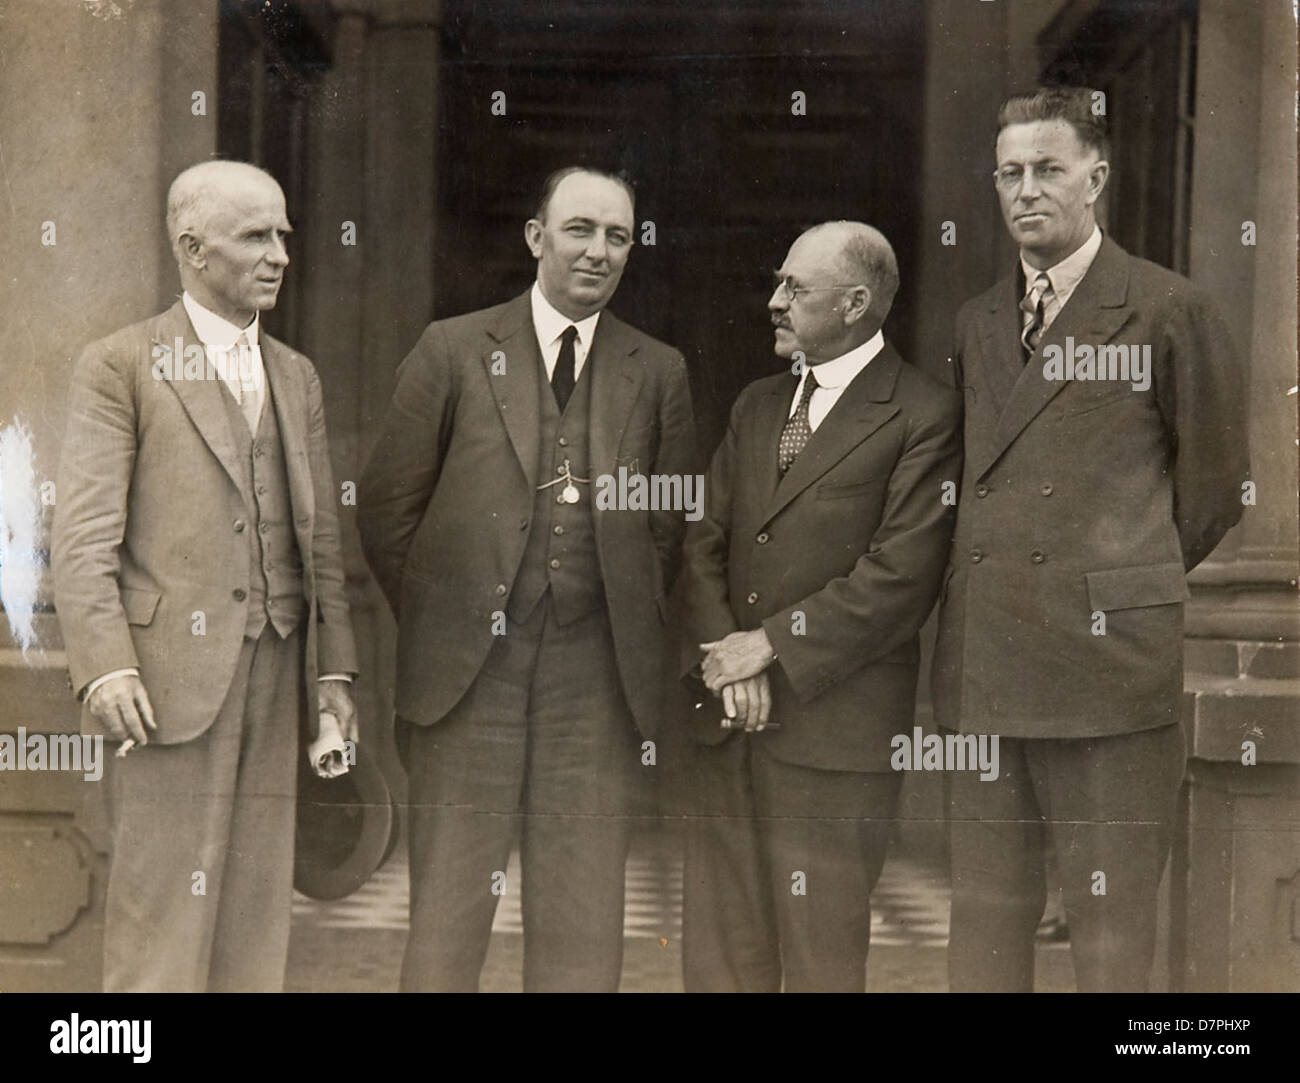 Norman 'Wizard' Smith and Don Harkness and two other men (on steps of Sydney Town Hall?], 1926 - 1936 - Stock Image